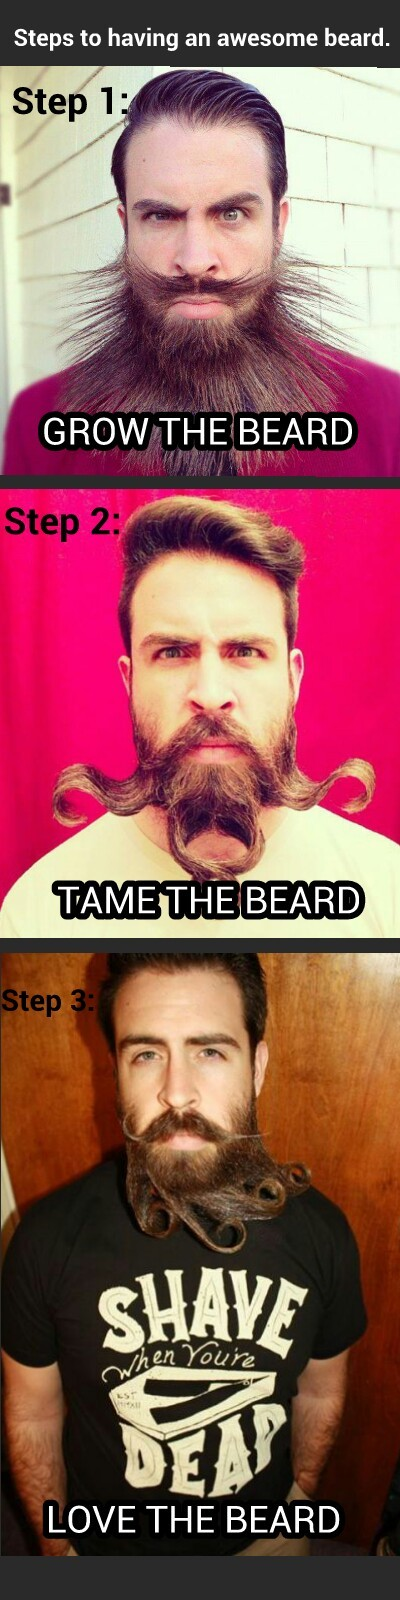 TAME YOUR BEARD BRO!   IMAGES ARE BORROWED, BUT MEME IS ORIGINAL